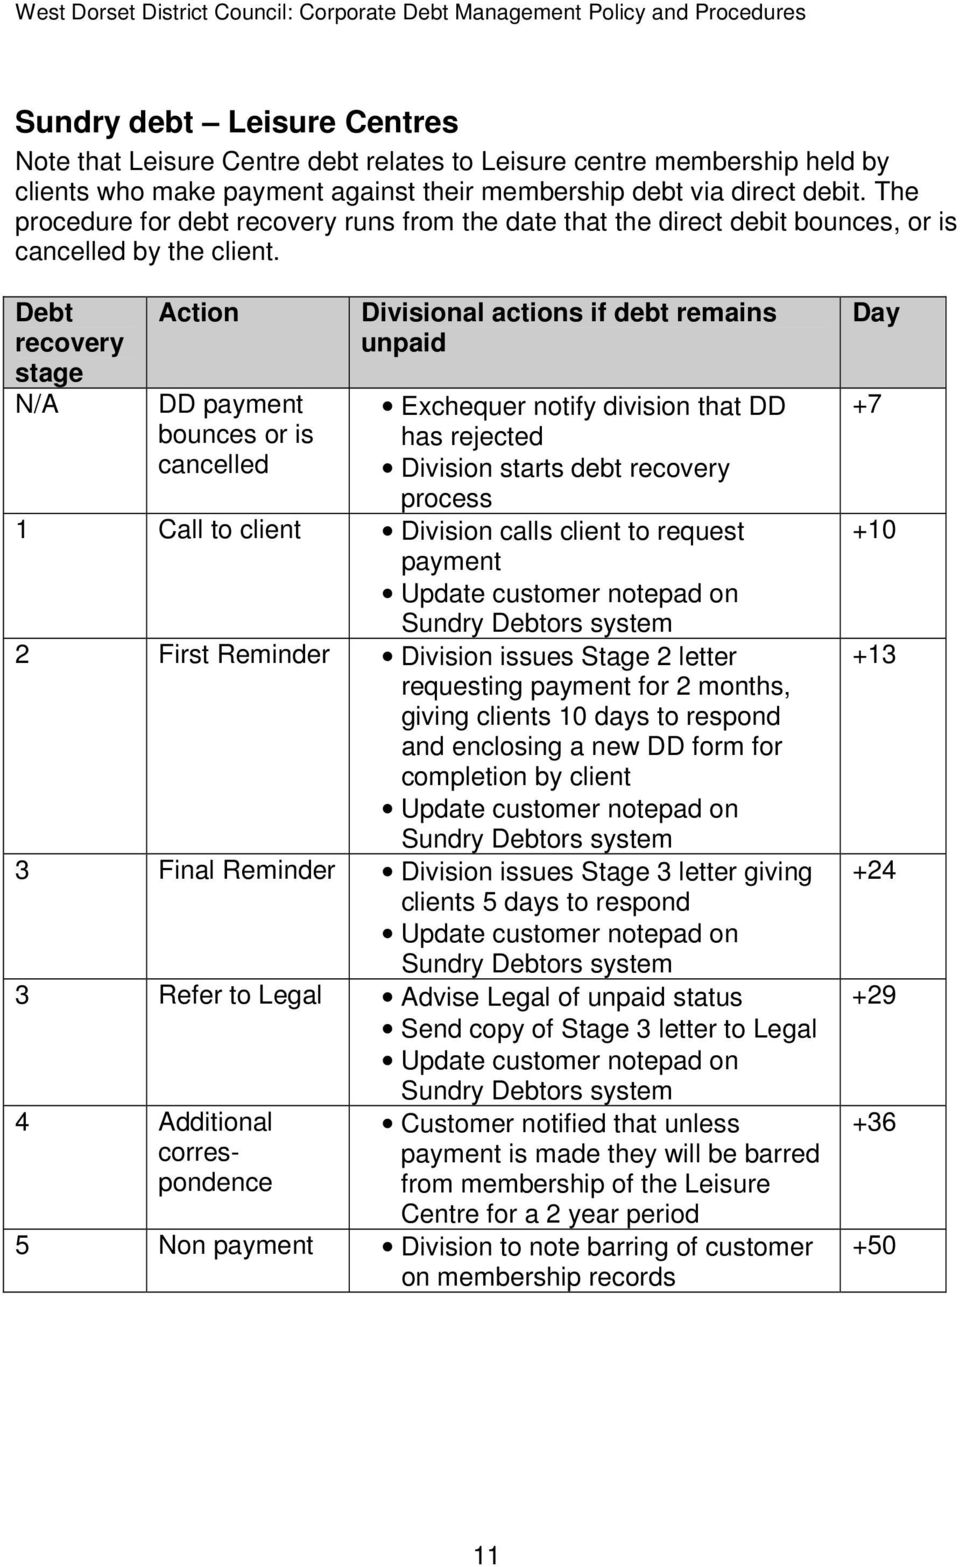 Debt recovery stage N/A Action DD payment bounces or is cancelled Divisional actions if debt remains unpaid Exchequer notify division that DD has rejected Division starts debt recovery process 1 Call